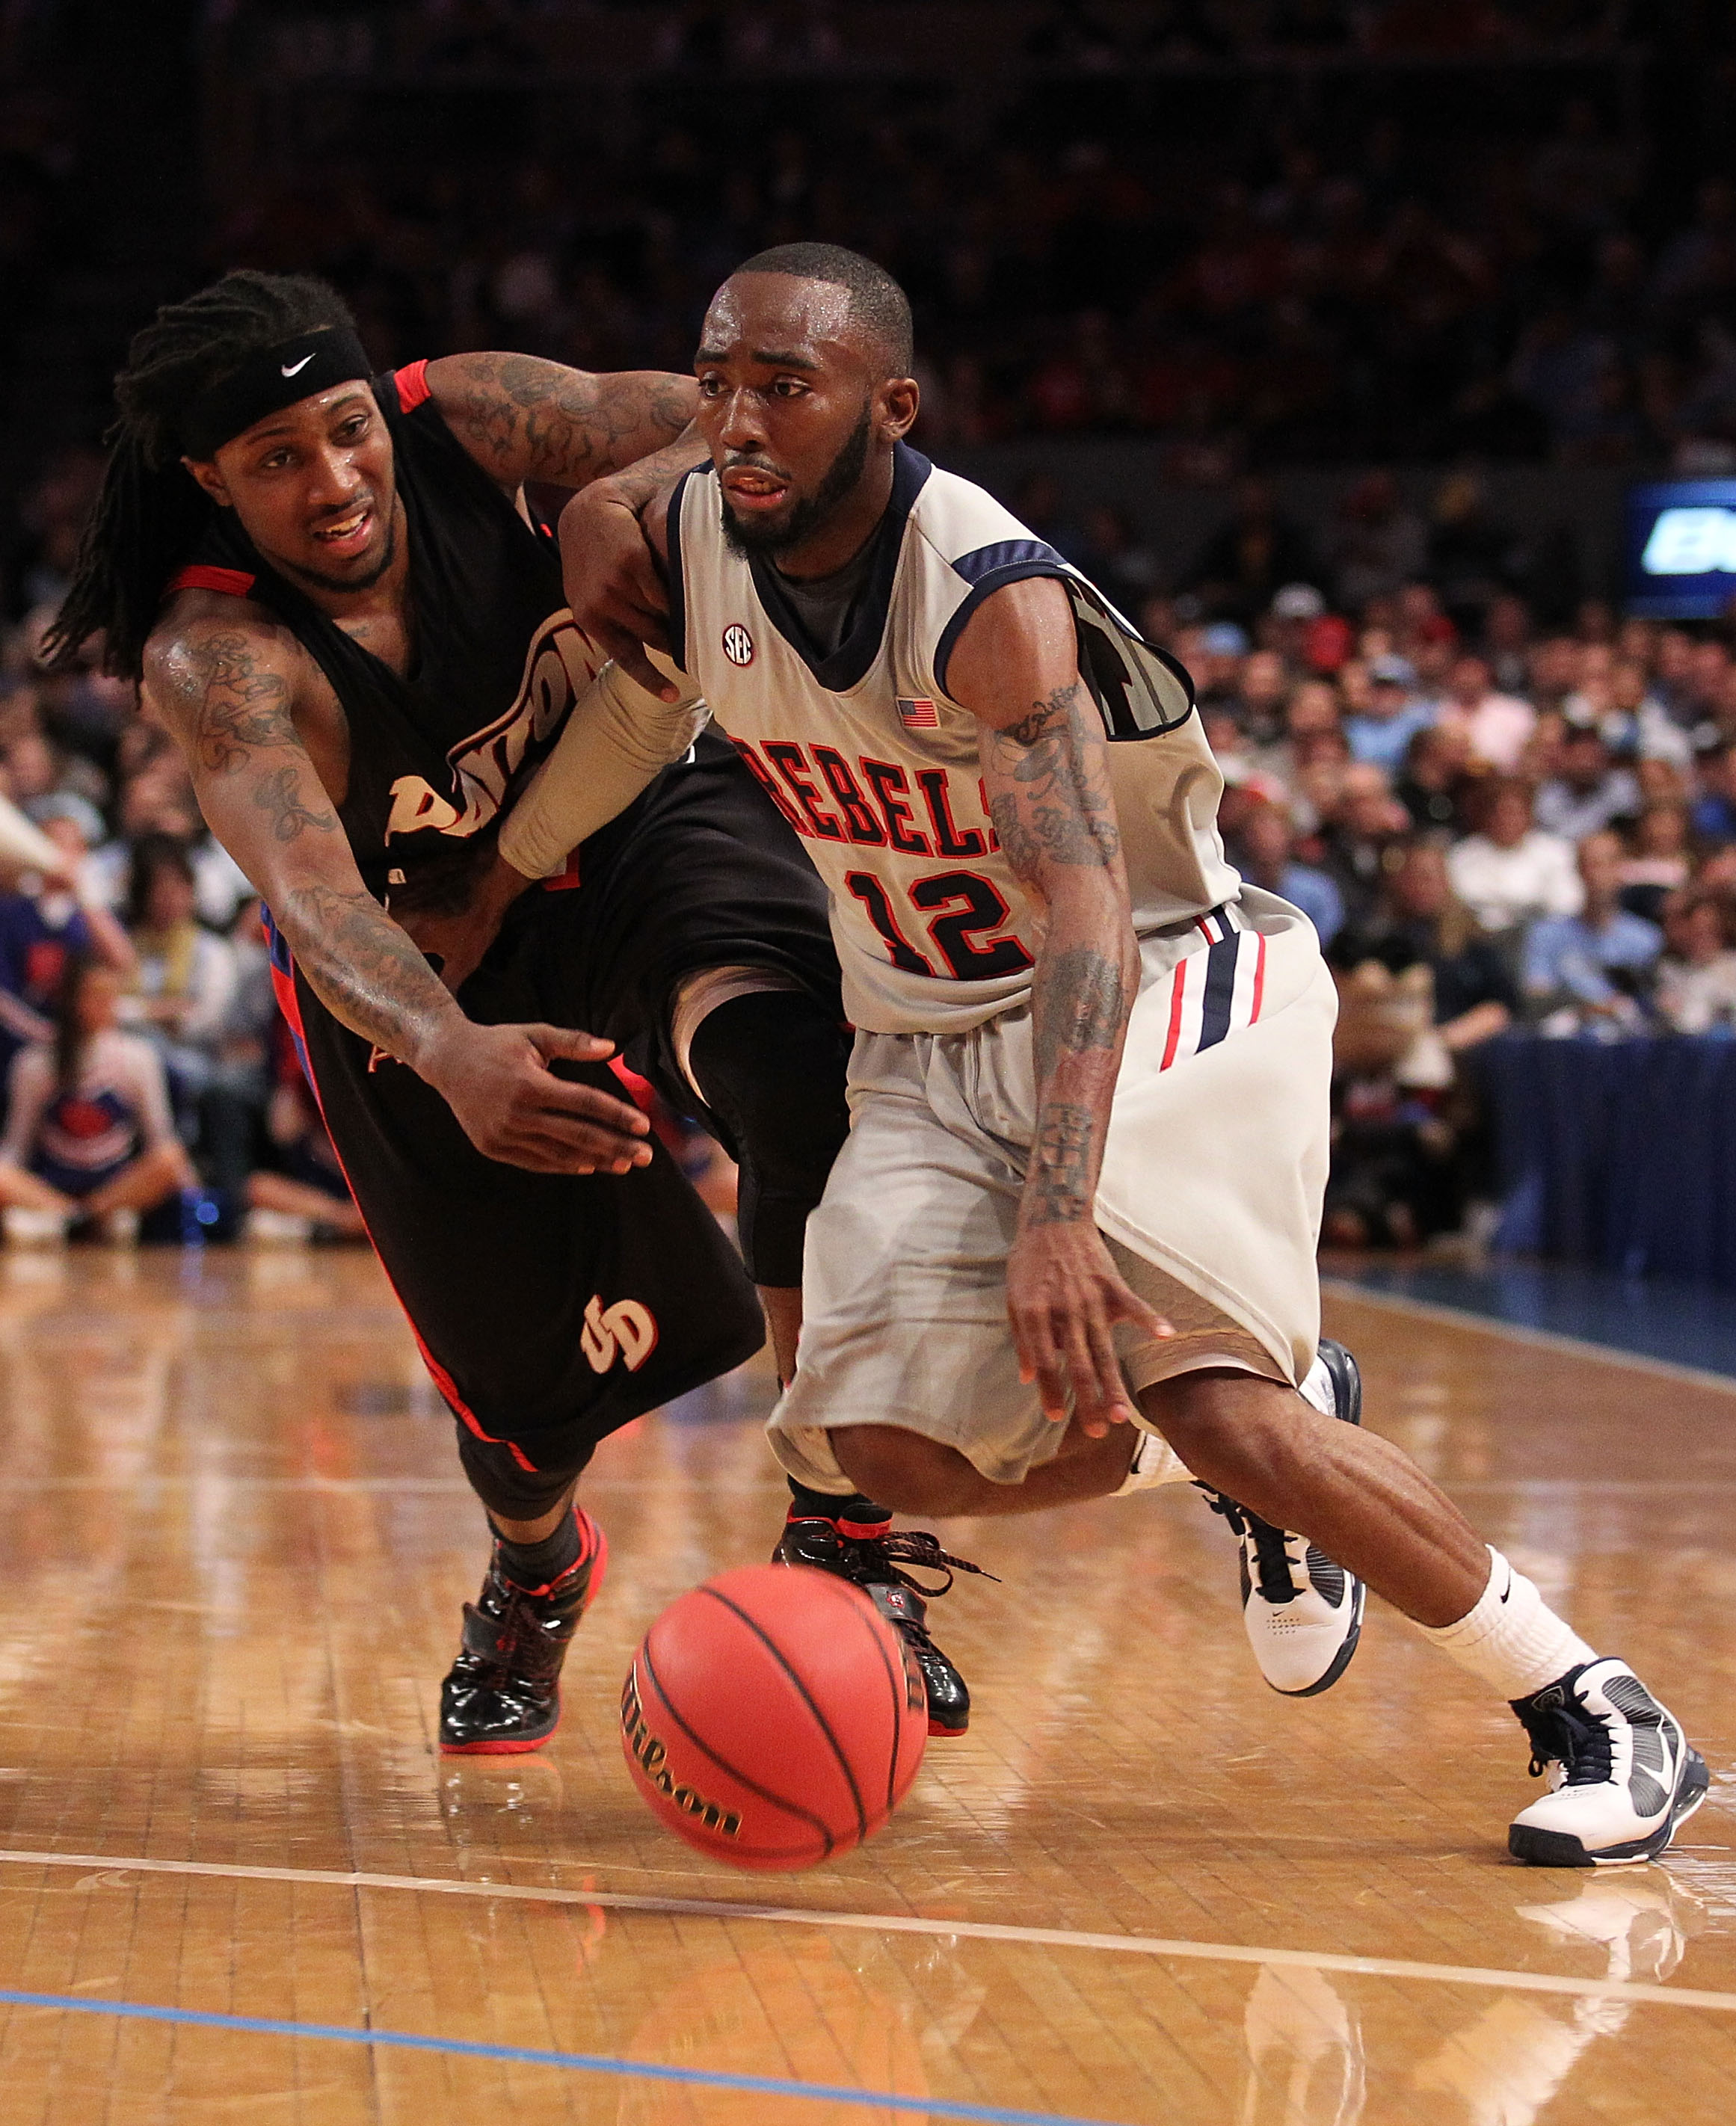 NEW YORK - MARCH 30:  Chris Warren #12 of Ole Miss drives past London Warren #1 of the Dayton Flyers during their semi final at Madison Square Garden on March 30, 2010 in New York, New York.  (Photo by Nick Laham/Getty Images)